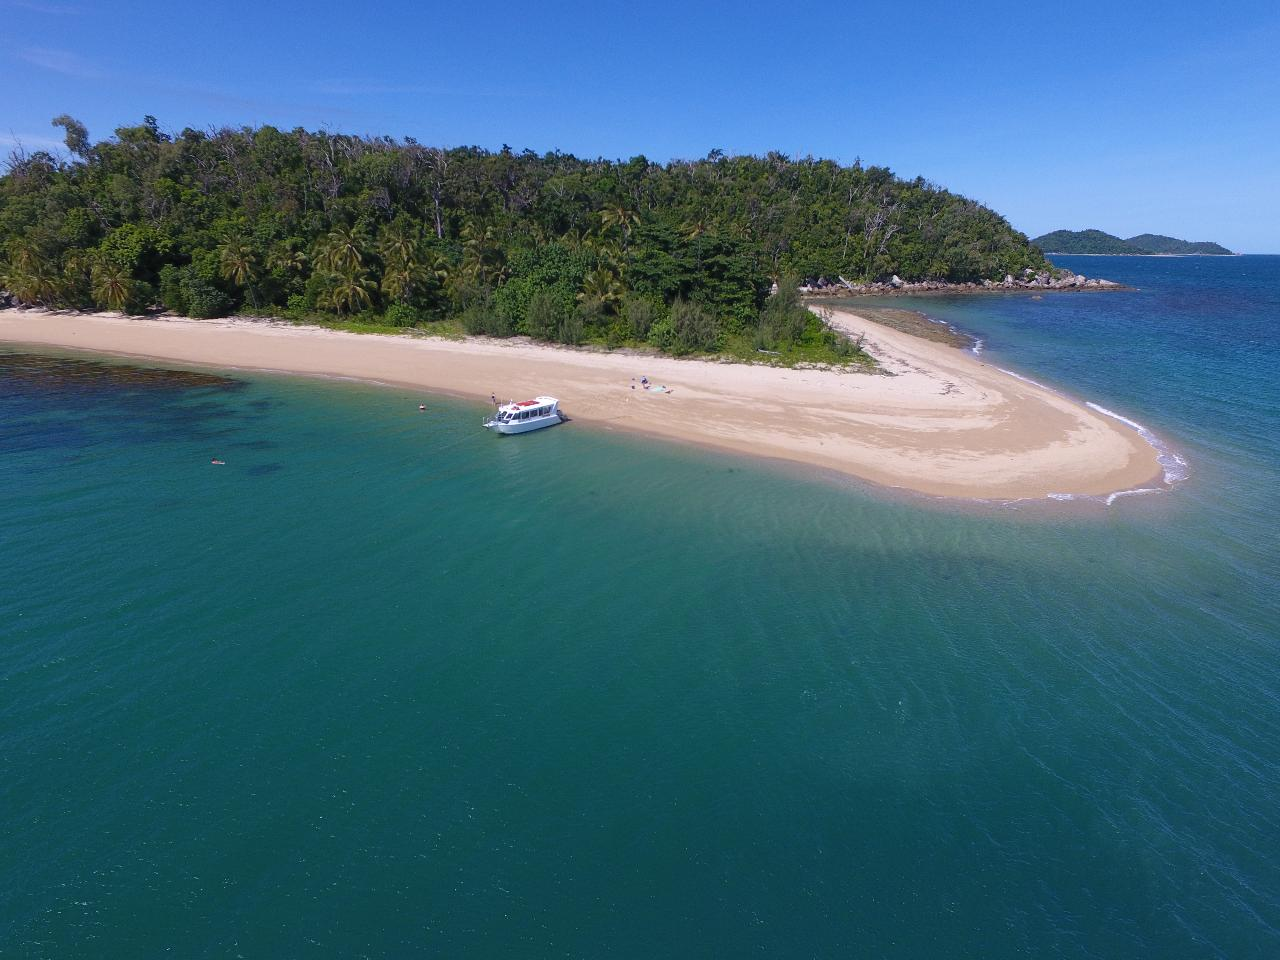 Dunk Island Holidays: Fozzy's 3 Hour, 3 Island Tour